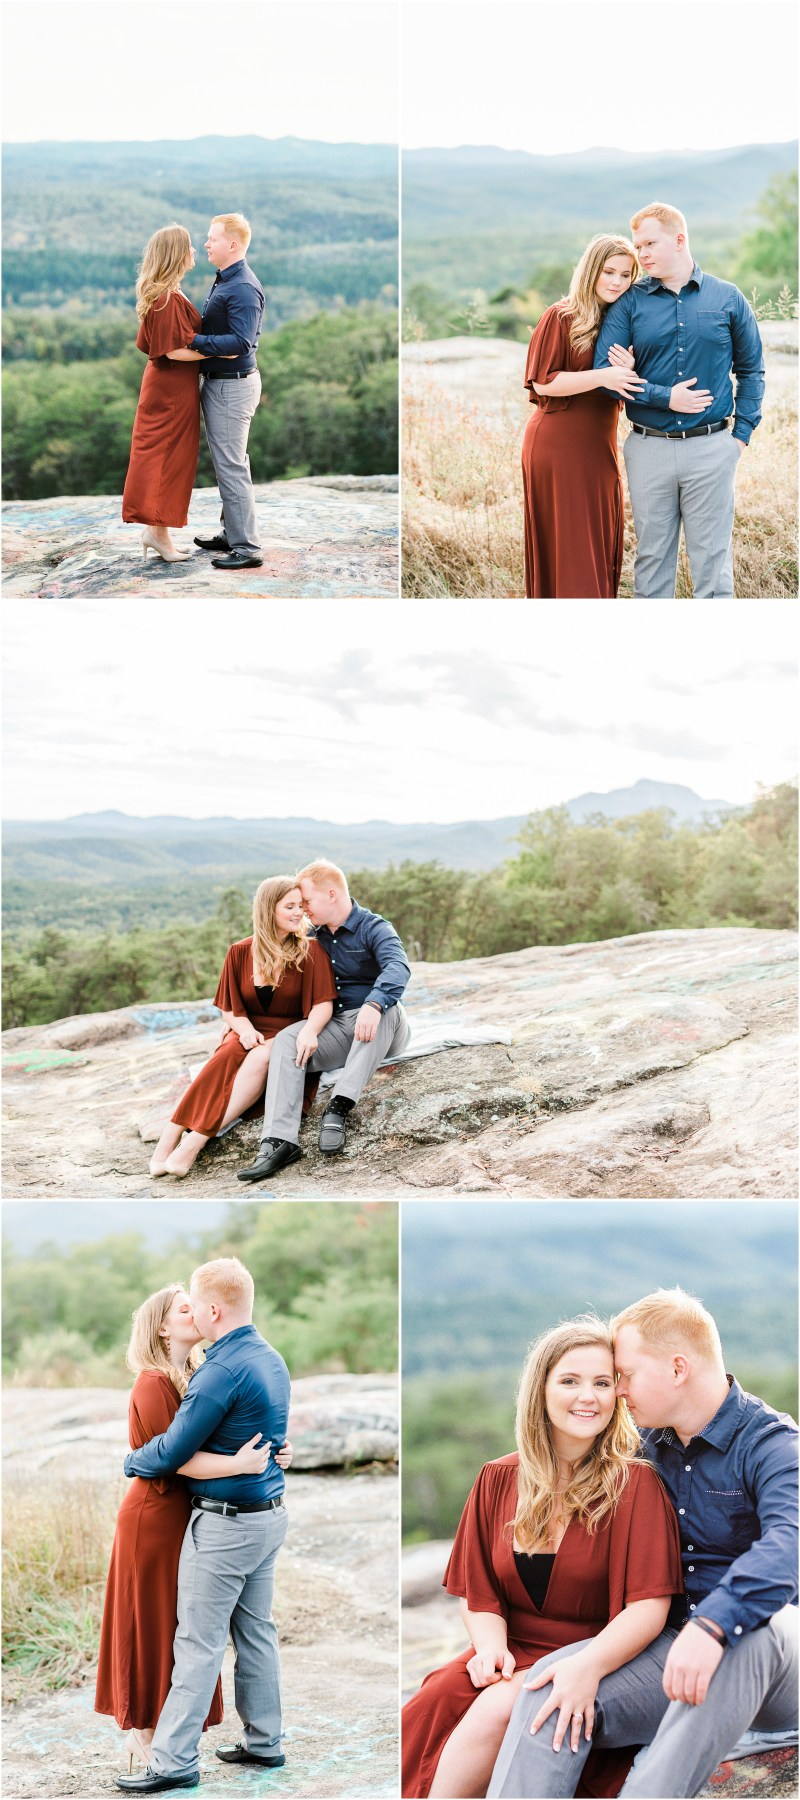 Bald Rock Engagement Session in Cleveland, South Carolina